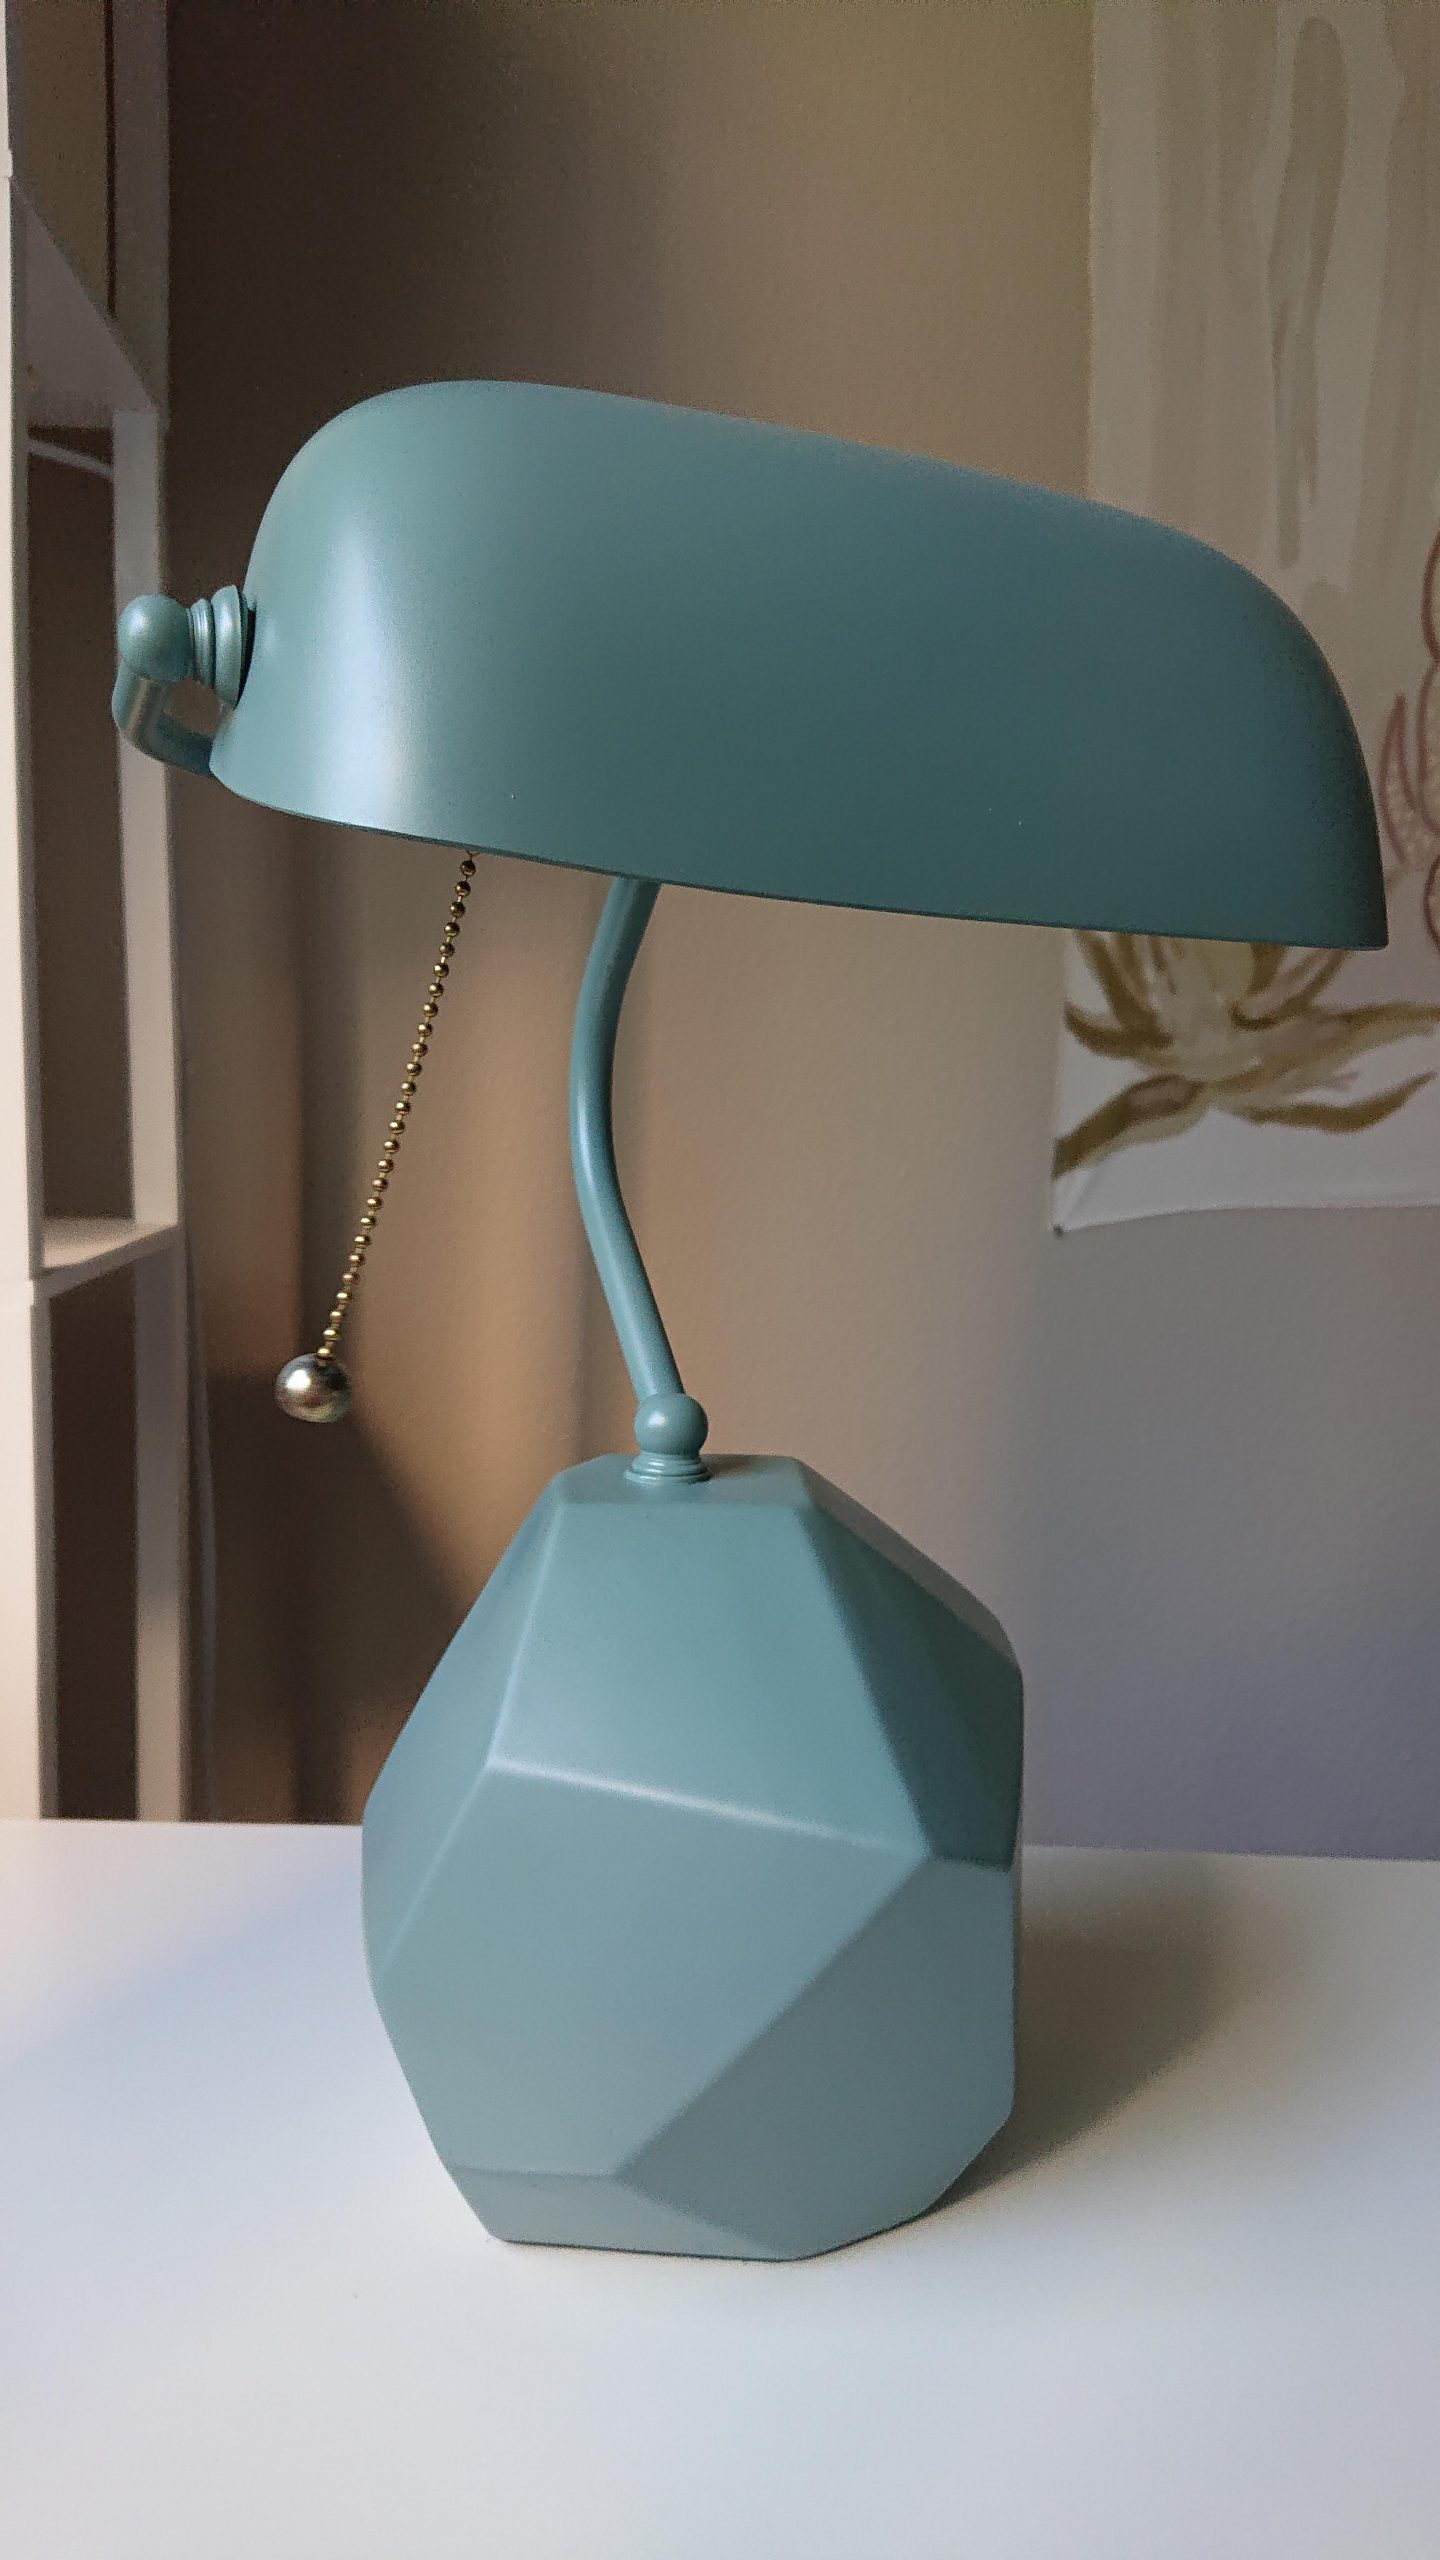 2h2lb8bzuhe51 scaled - A little spray paint made this a whole new lamp. Used to be black and glossy - hobbies, crafts